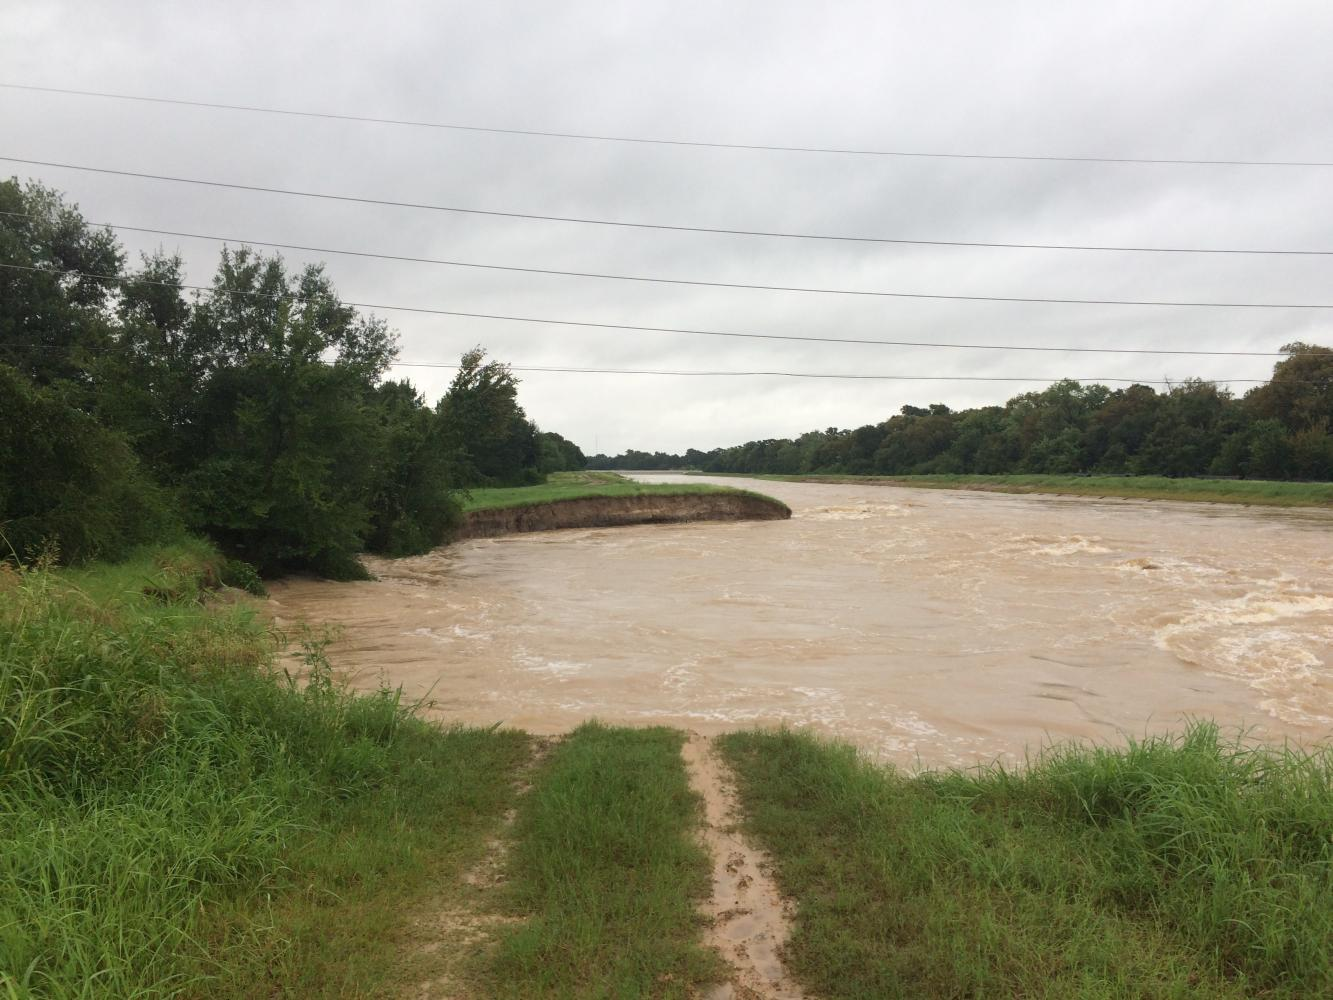 Buffalo Bayou continues to flow rapidly after Harvey seizes a large chunk of the bank. The hurricane damaged a vast amount of land in the Houston area.